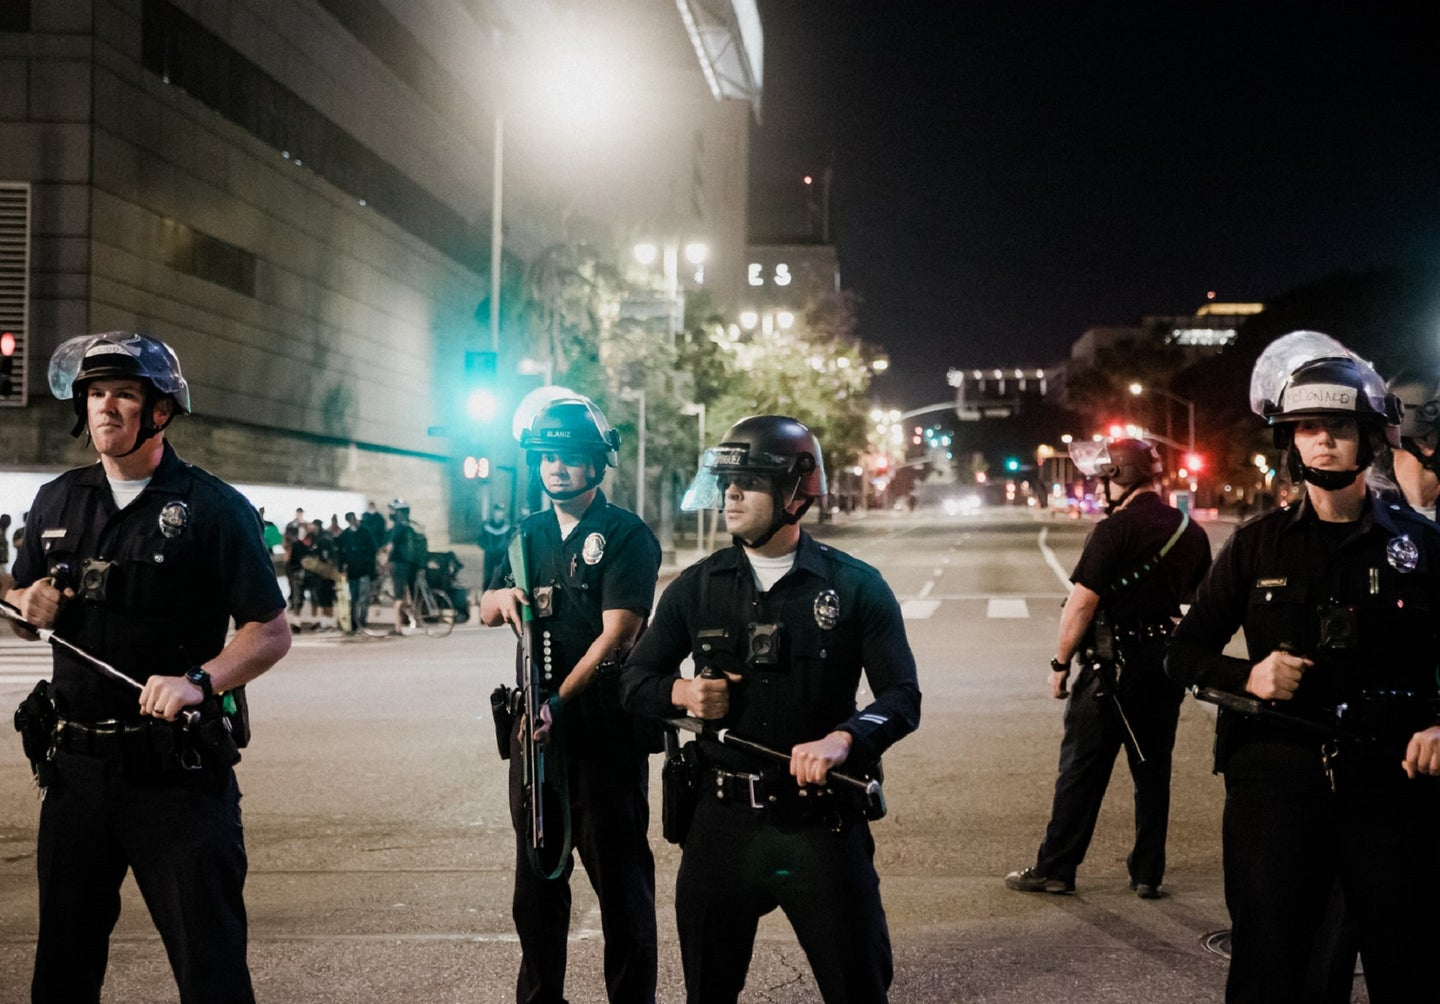 LAPD officers with batons and helmets on the street at night